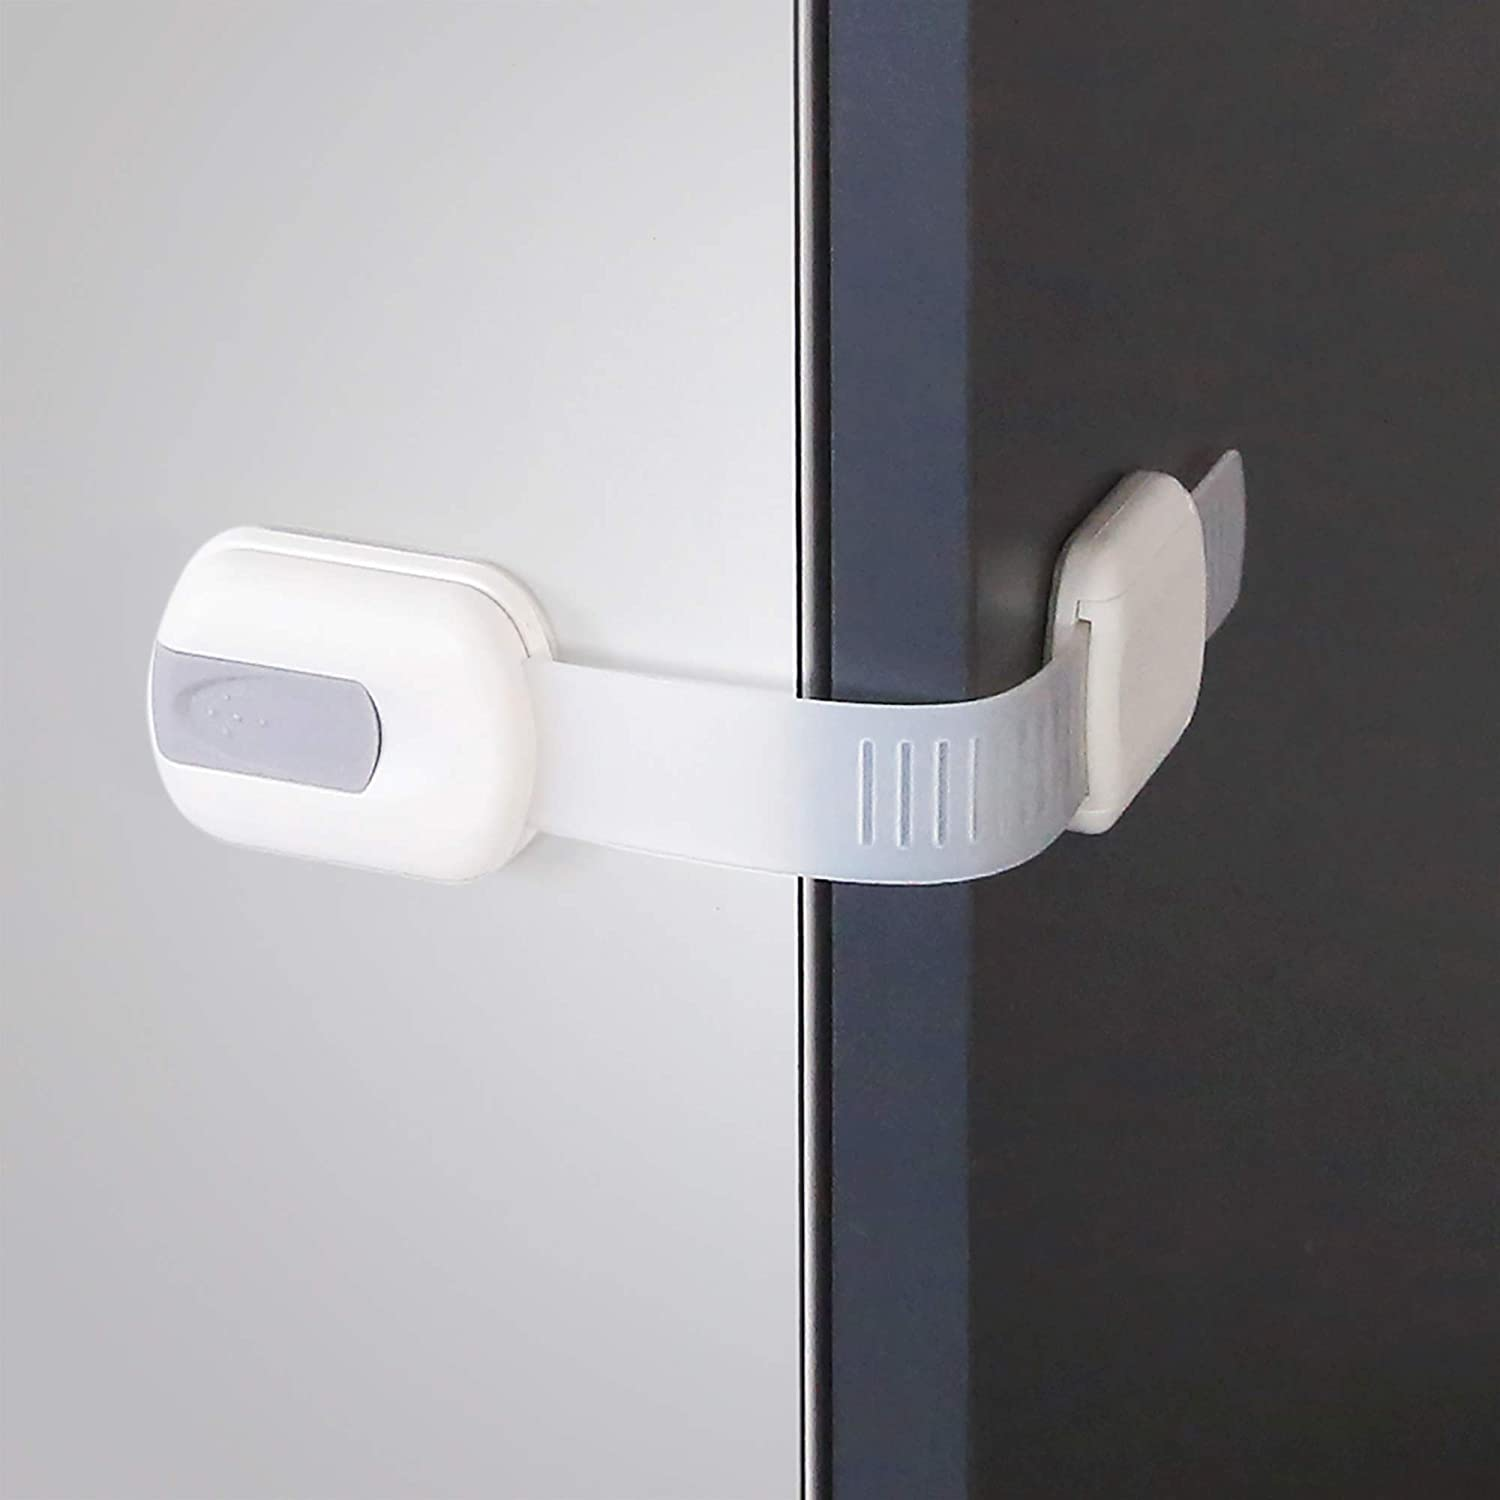 Vmaisi Baby Proofing Cabinet Locks - Adjustable Spring new work Mu Childproofing Sale Special Price